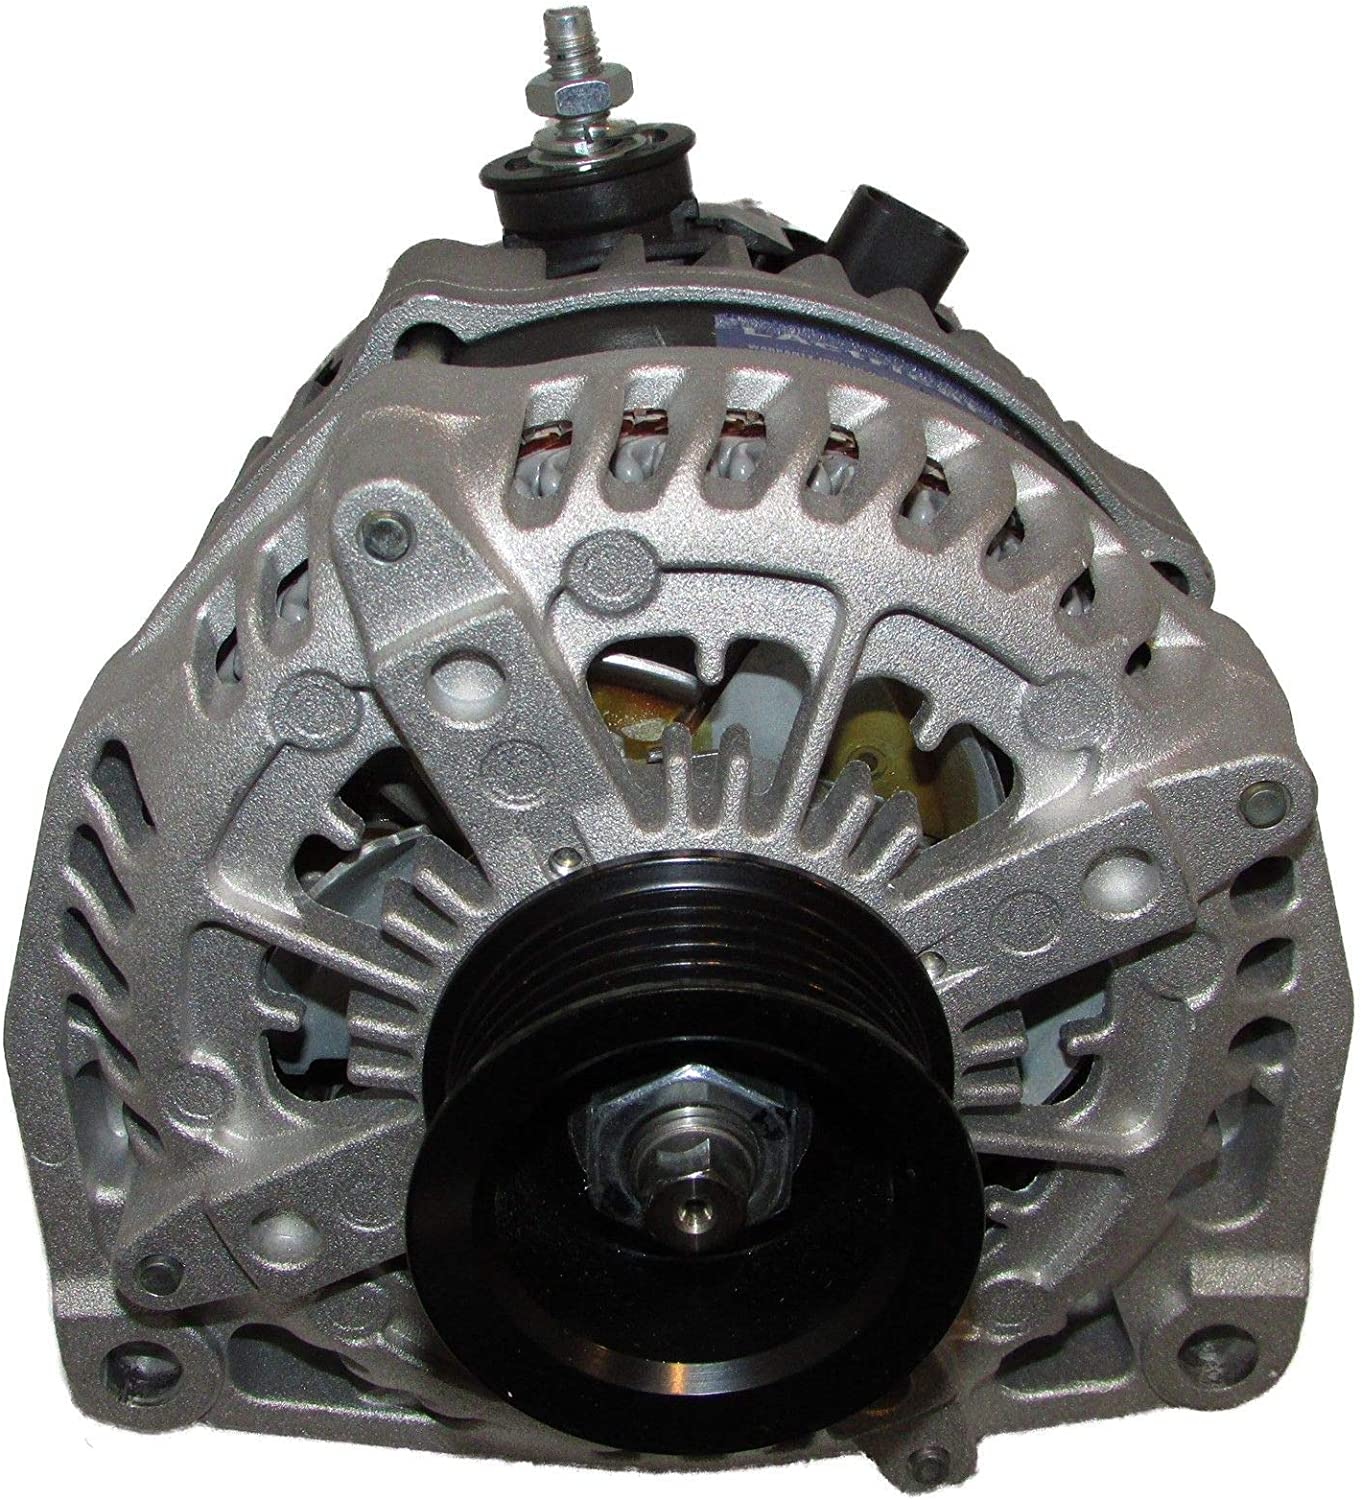 Direct sale of manufacturer LActrical latest High Output 300 AMP Alternator GMC fits Chevrolet Chev